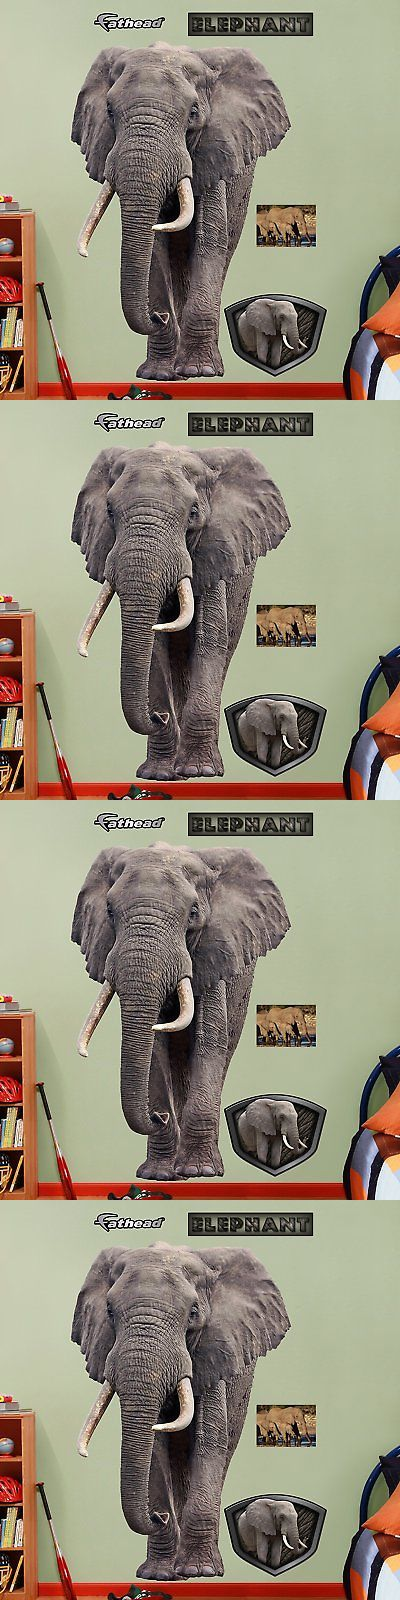 Other Nursery Wall D cor 20430: Fathead Elephant Graphic Wall Décor -> BUY IT NOW ONLY: $98.76 on eBay!